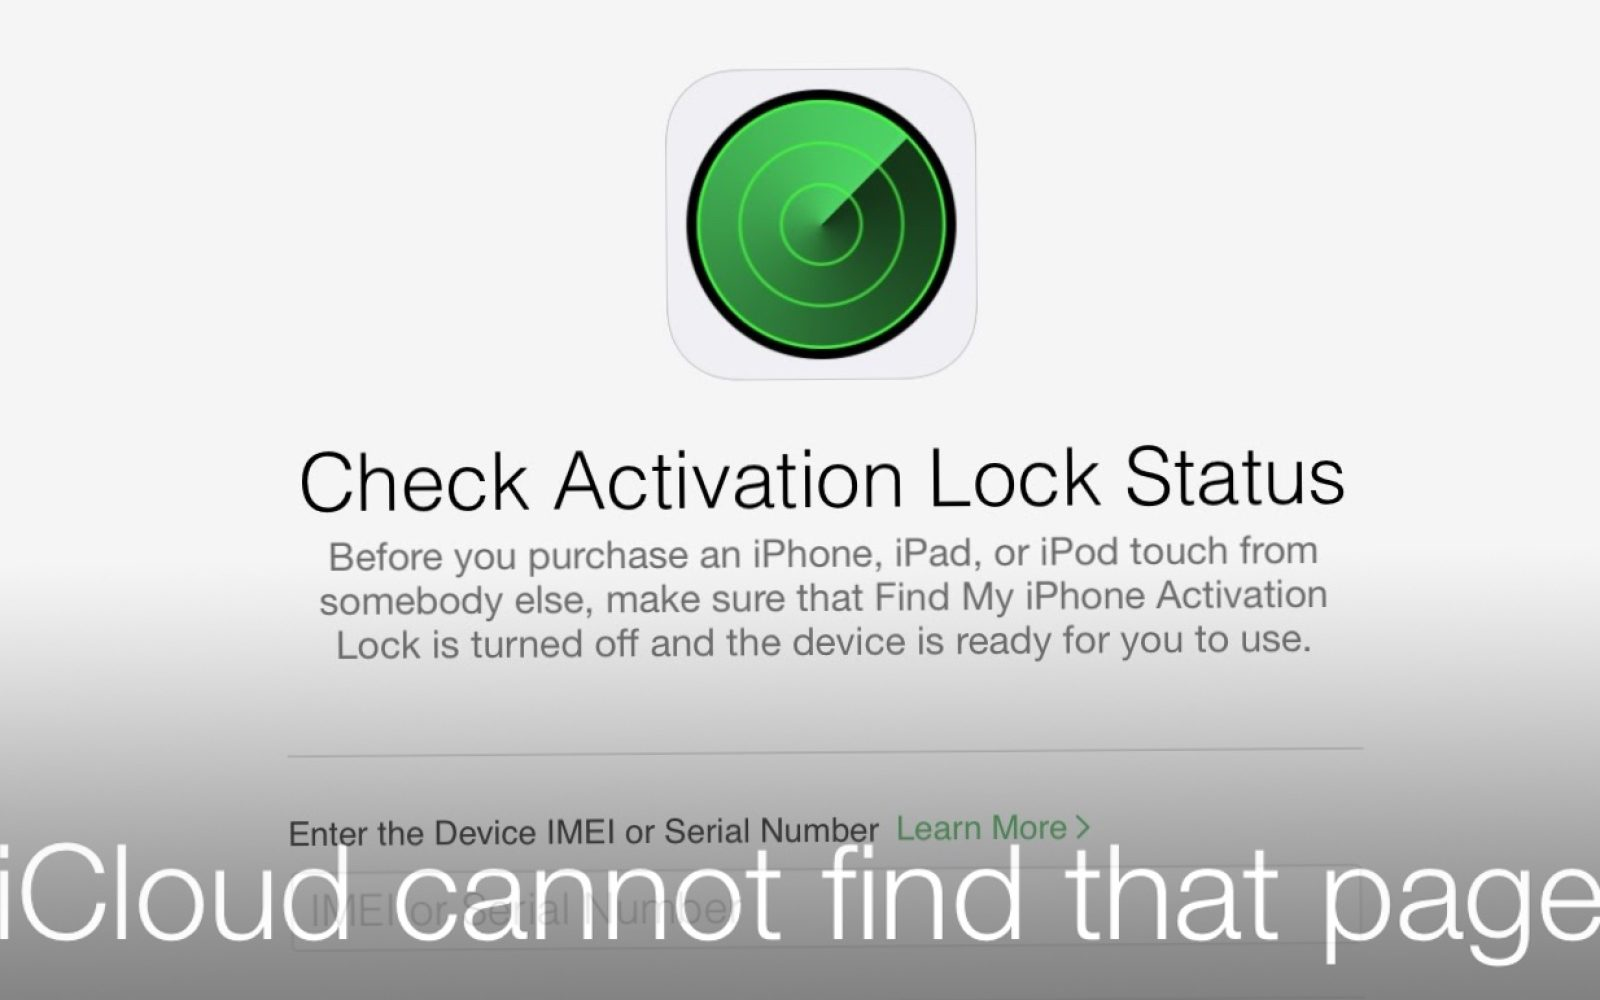 Apple inexplicably removes iCloud Activation Lock status